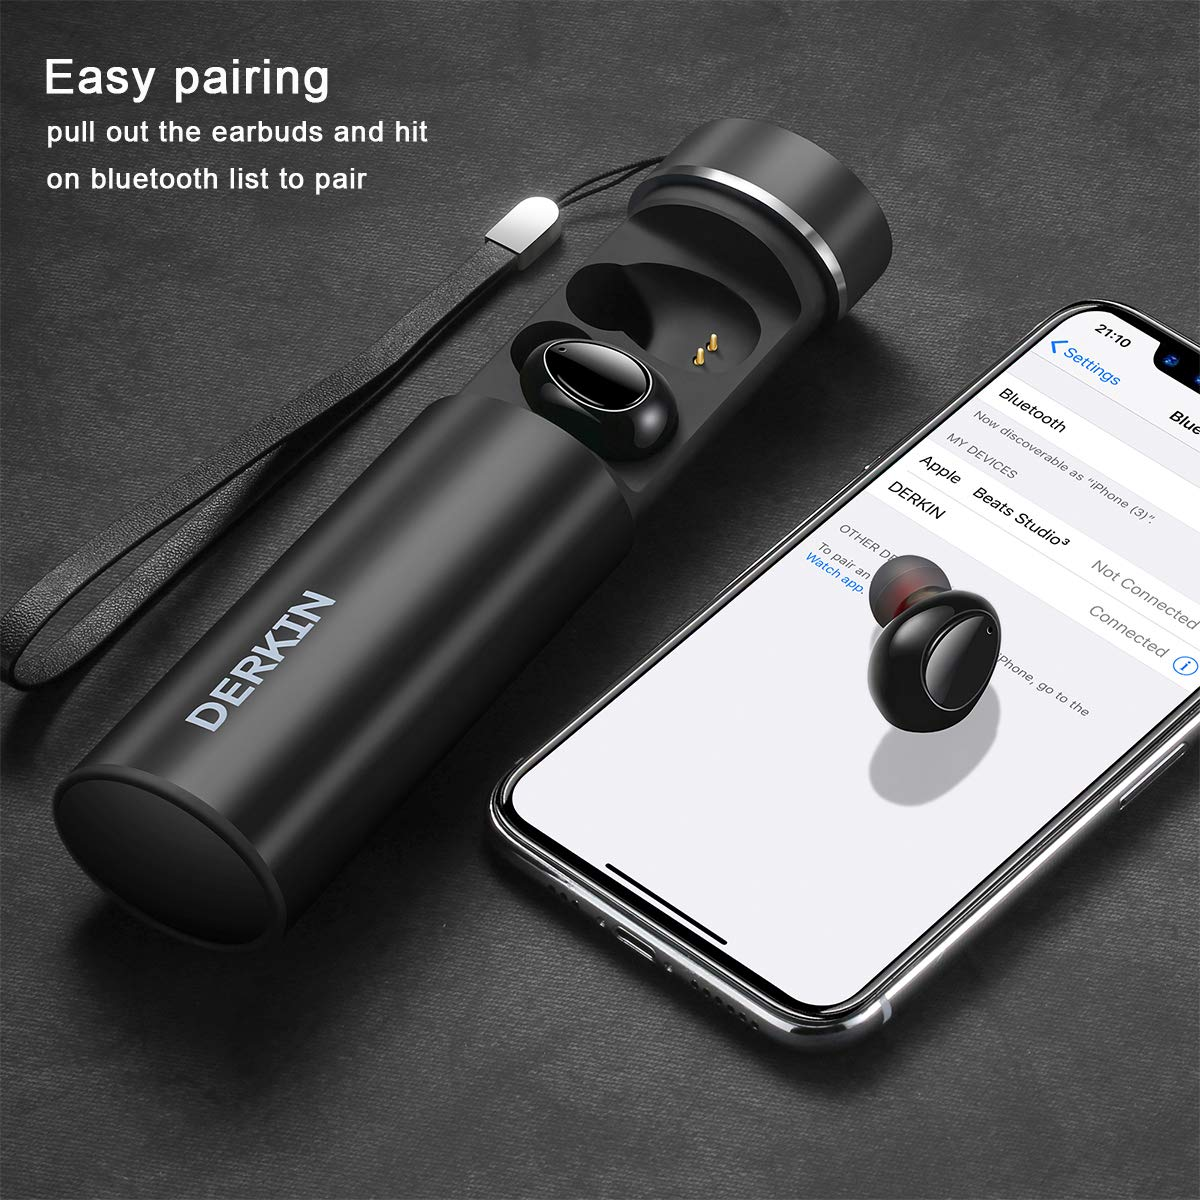 Wireless Earbuds, Derkin TWS X7 Best Bluetooth 5.0 Headphones 3D Stereo 16H Playtime Sweatproof Earphones Built-in Dual Mic,Noise Cancelling Wireless Headphones